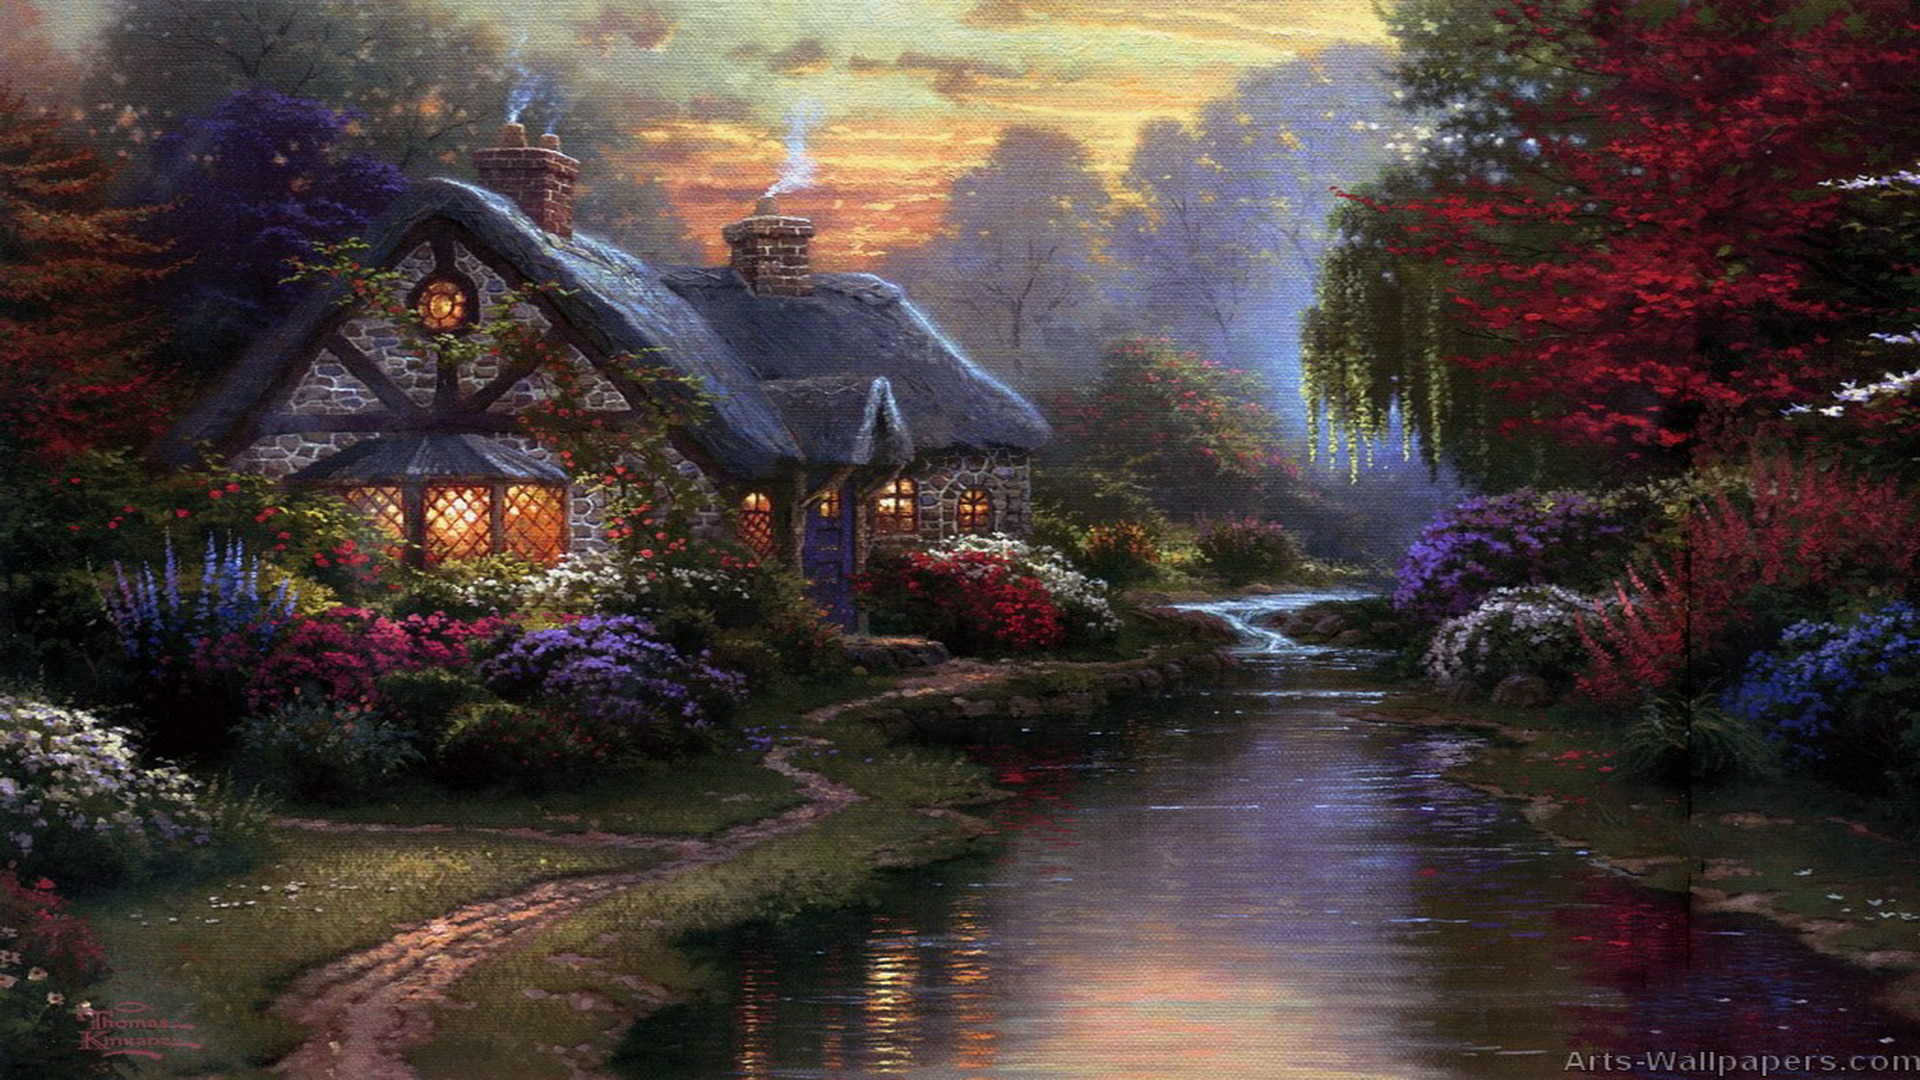 thomas kinkade wallpaper 1920x1080 - photo #24